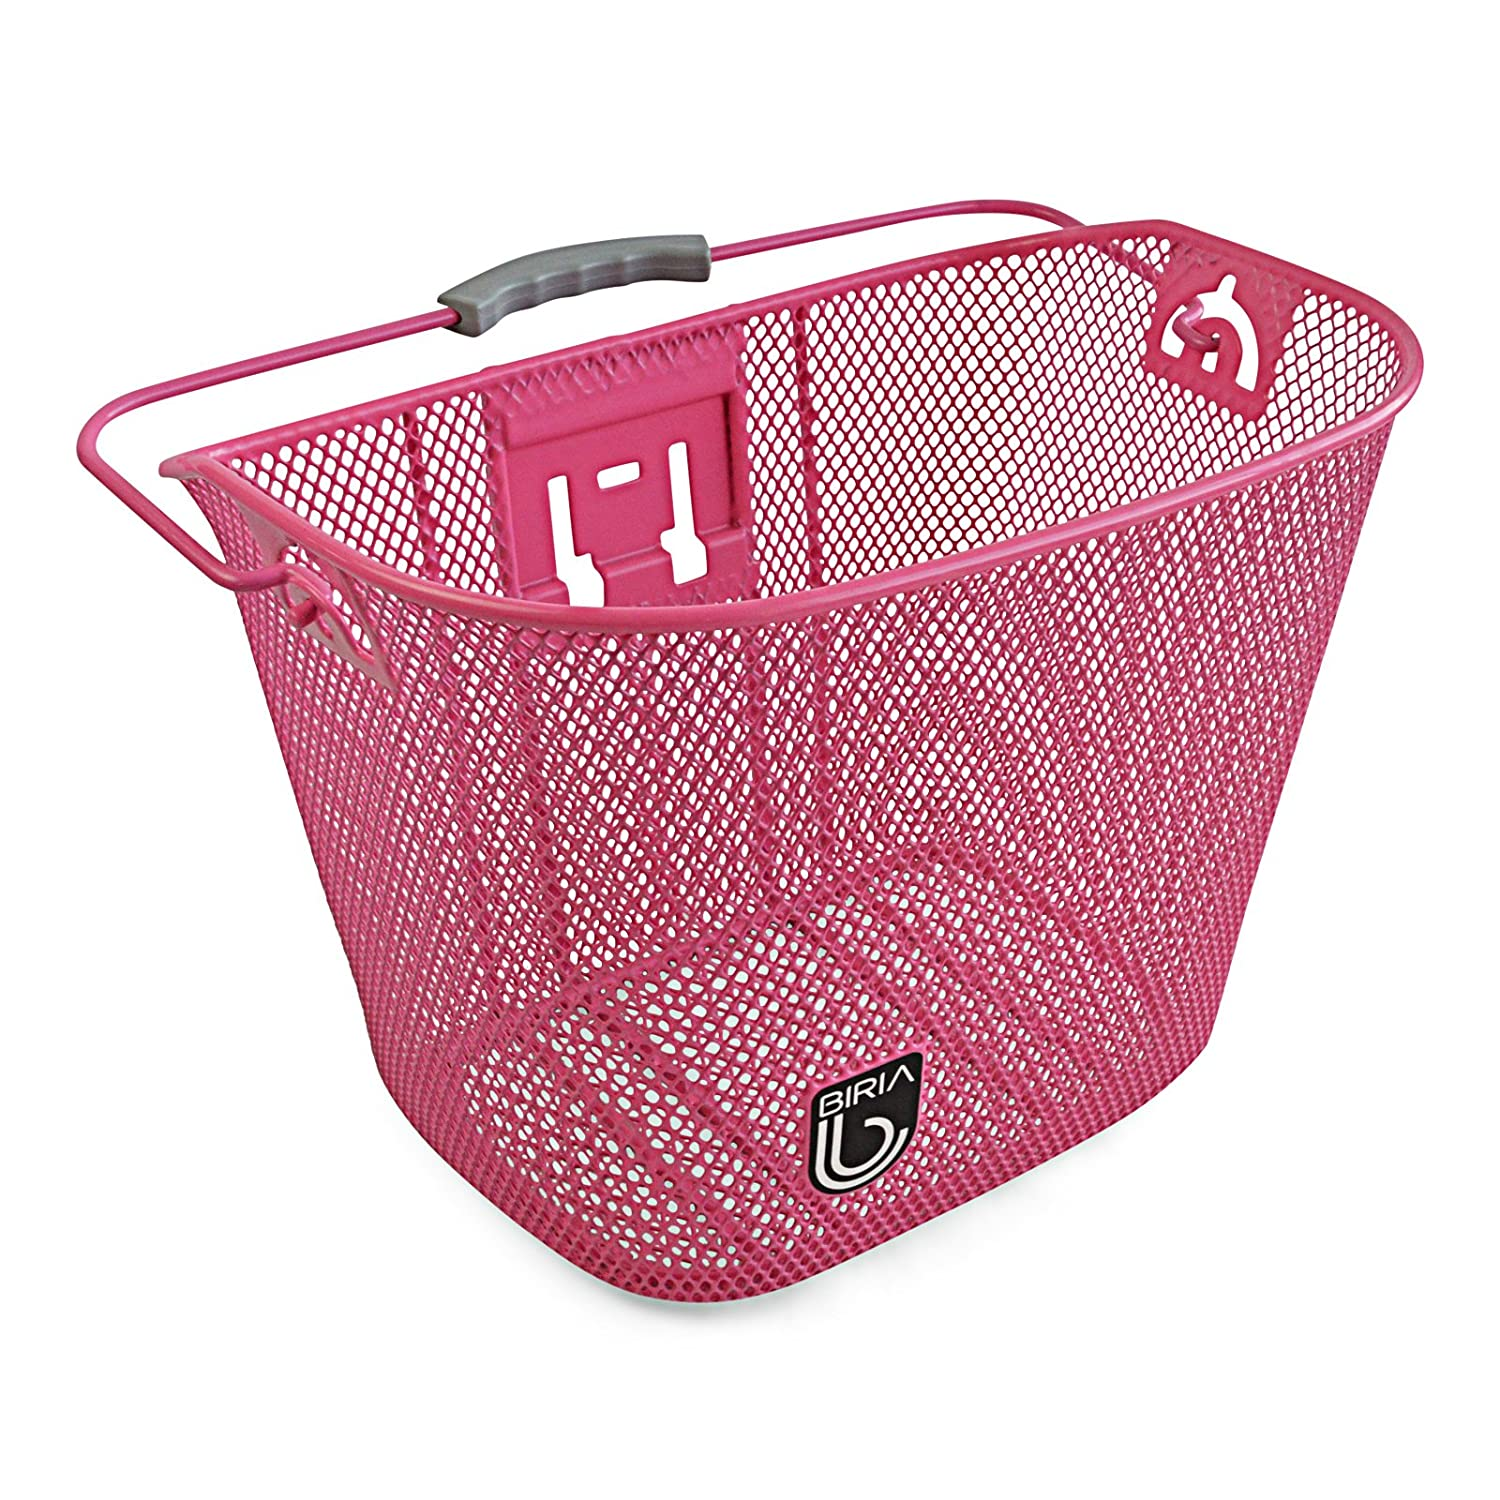 Removable Bicycle Basket with Bracket Pink Front Quick Release Basket Pink BIRIA Wire Mesh Bicycle basket NEW